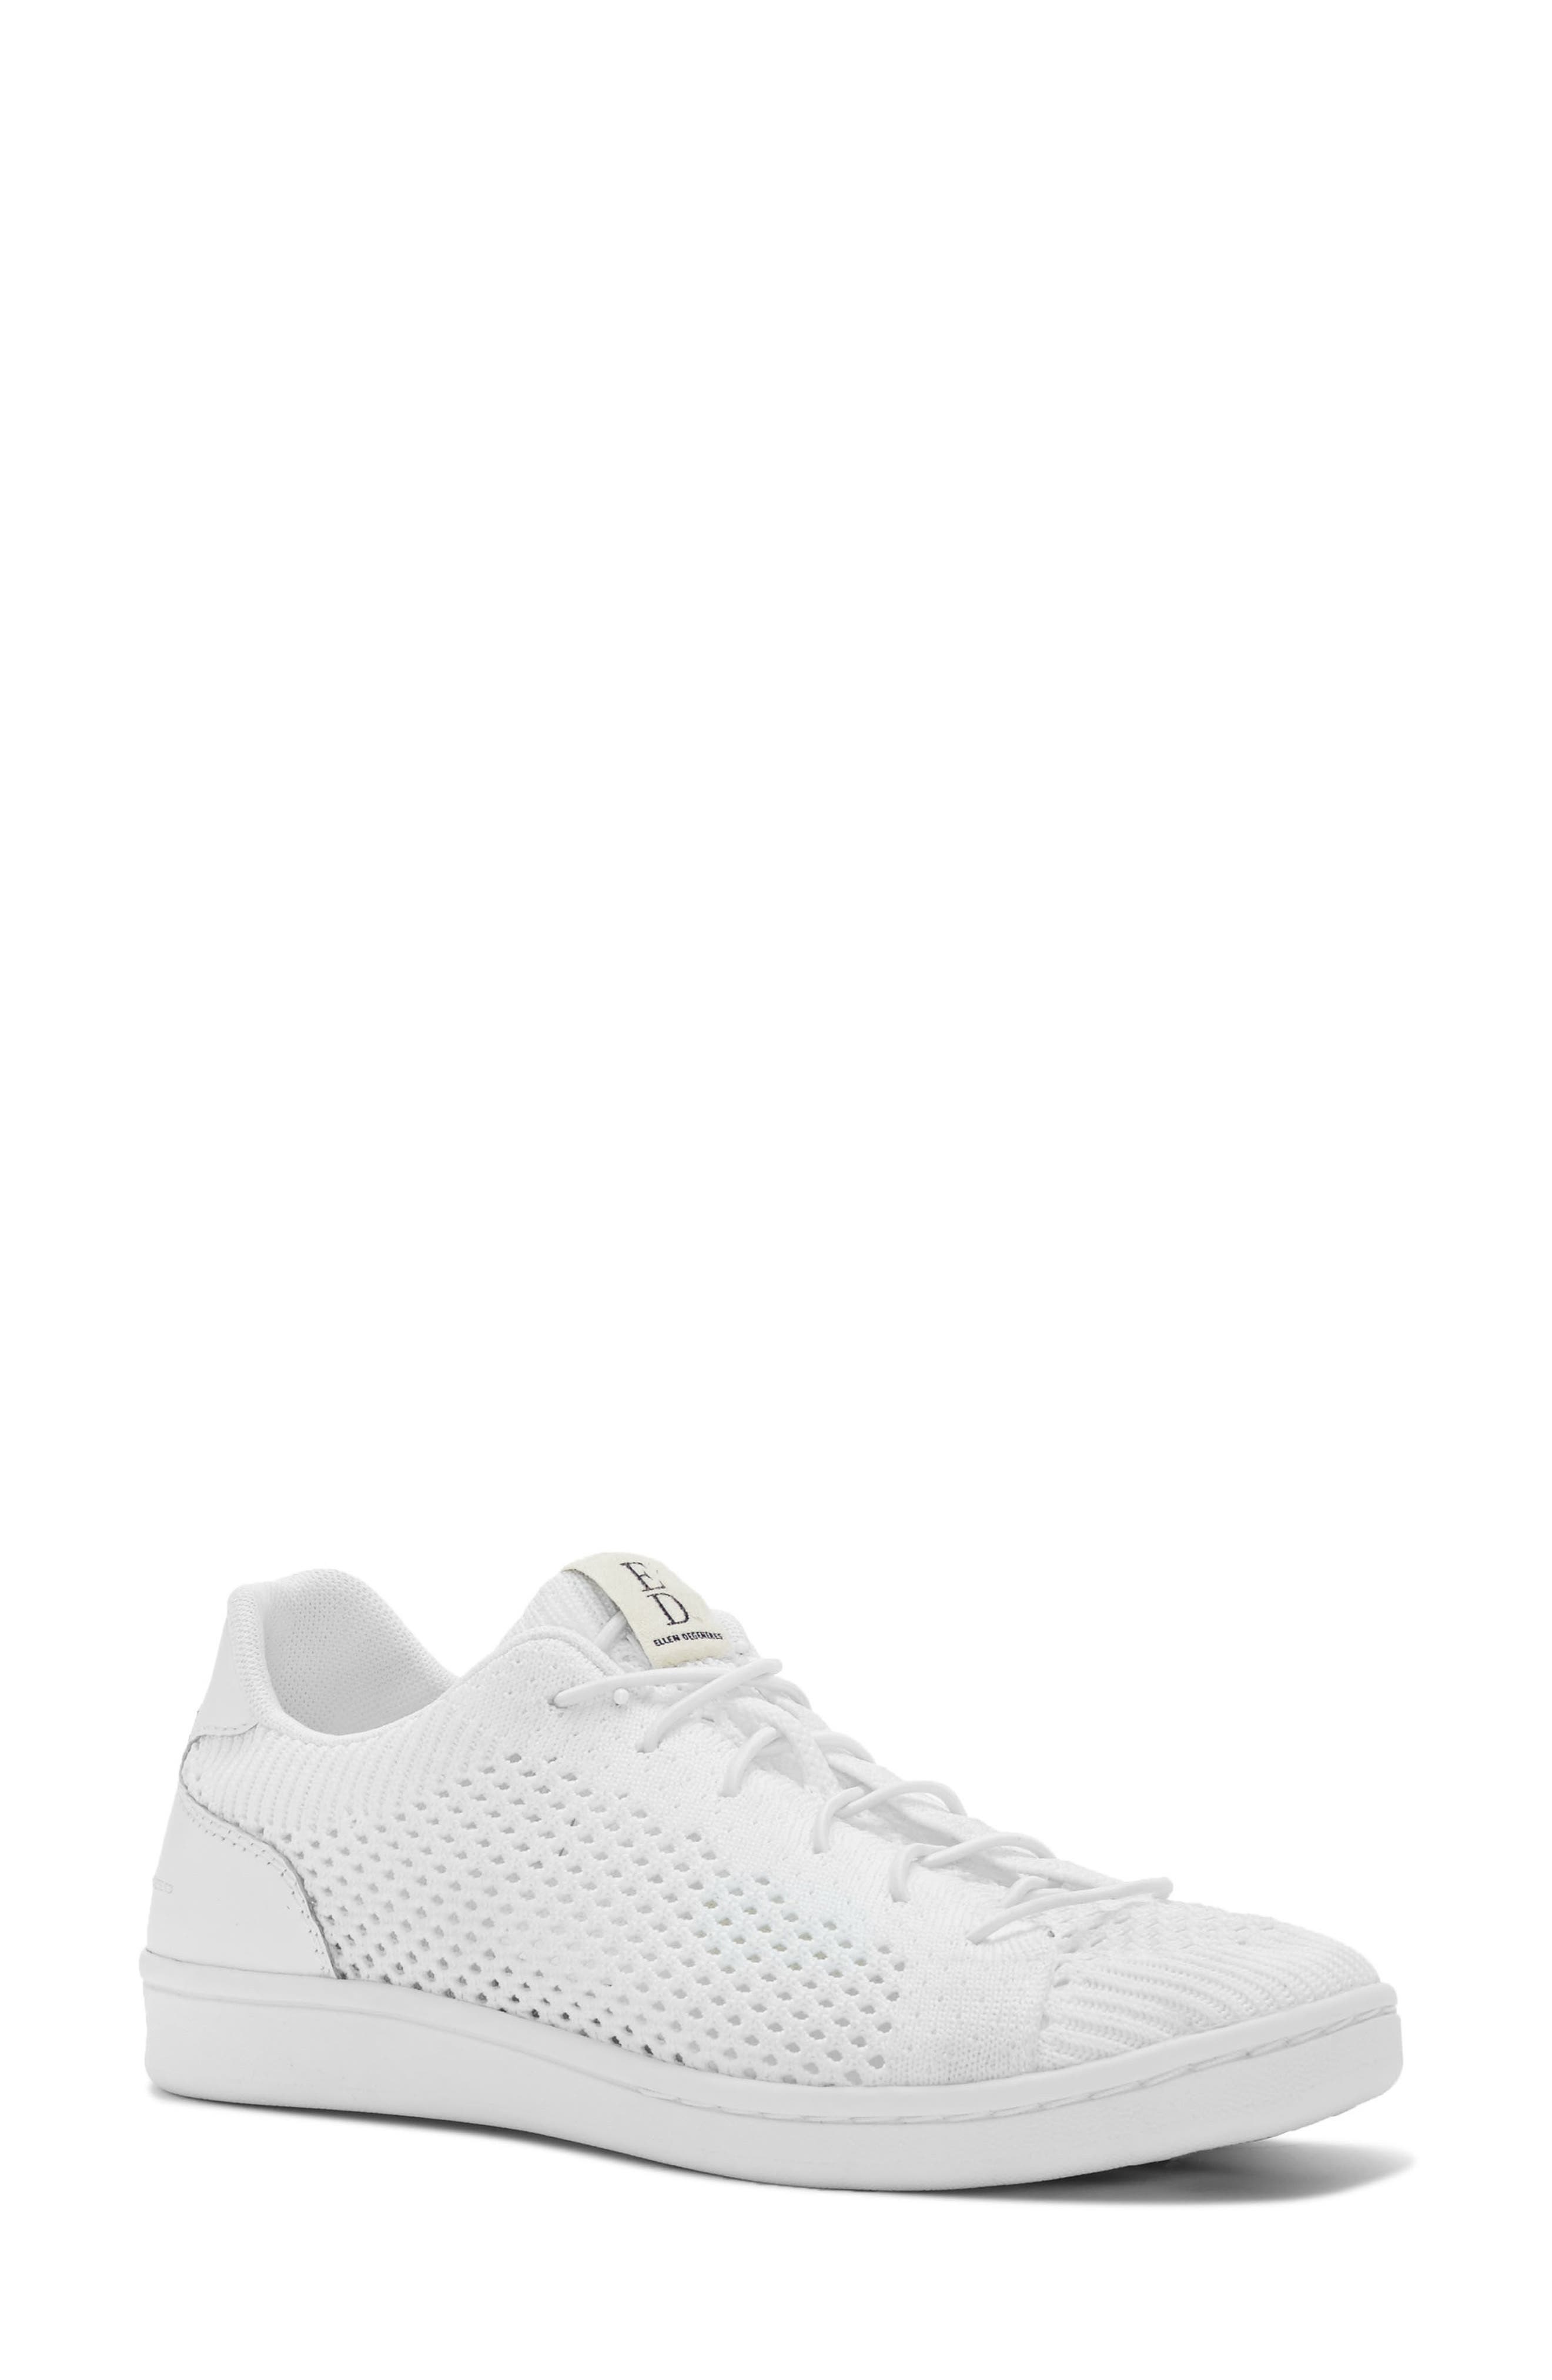 Alternate Image 1 Selected - ED Ellen DeGeneres Casie Knit Sneaker (Women)